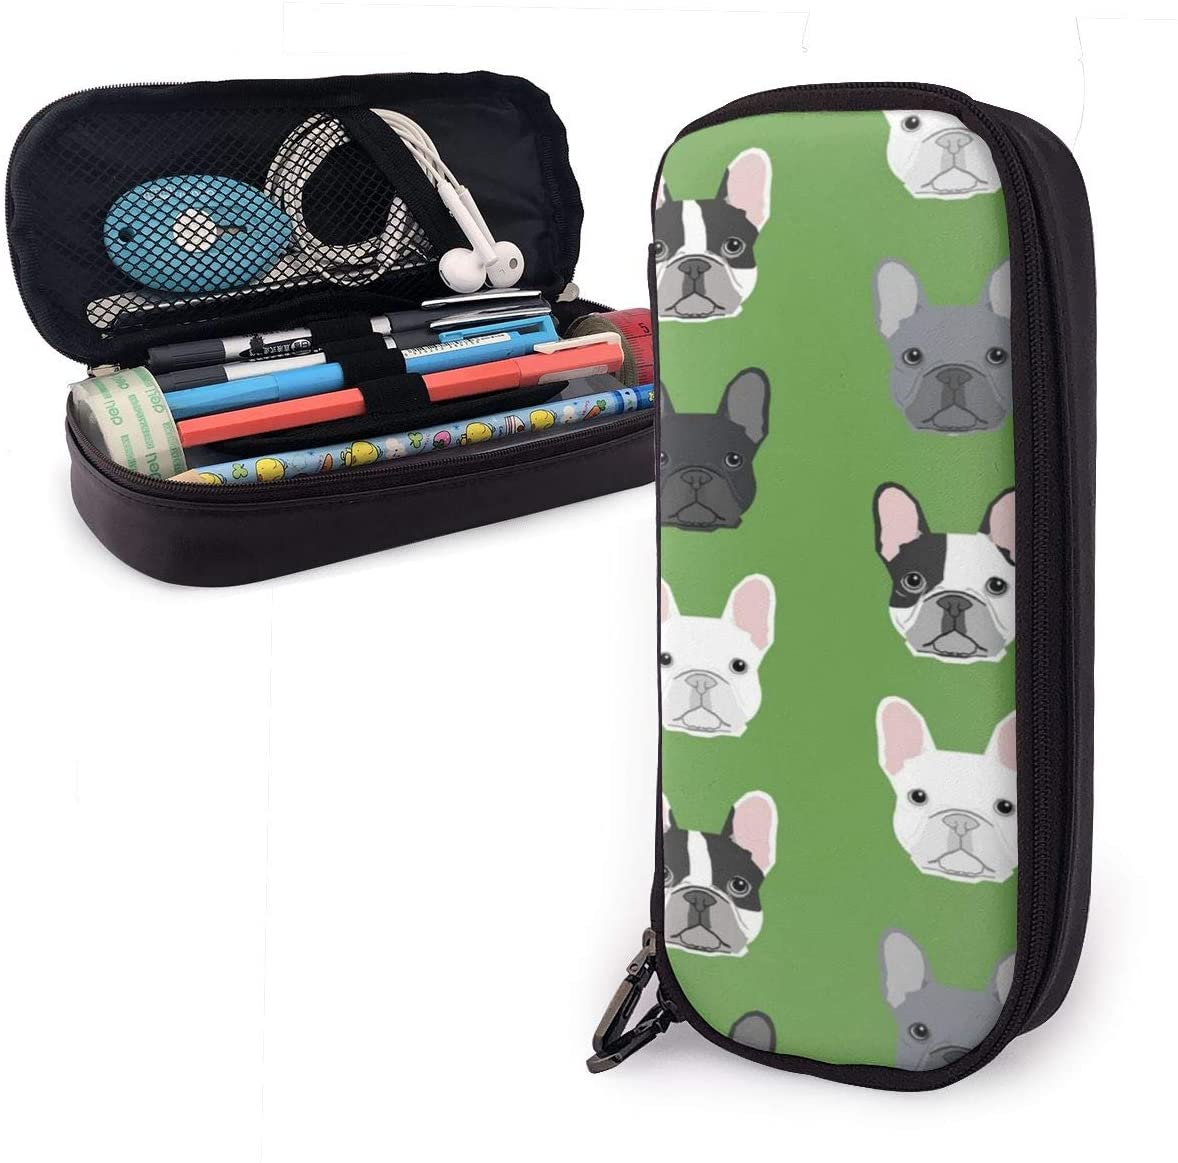 NiYoung Leather Pen Pencil Holder with Zipper, One Pocket Carrying Case for Office Supply Accessories for Teen Student Kids Painter, Green Frenchie Dog Pen Case Box